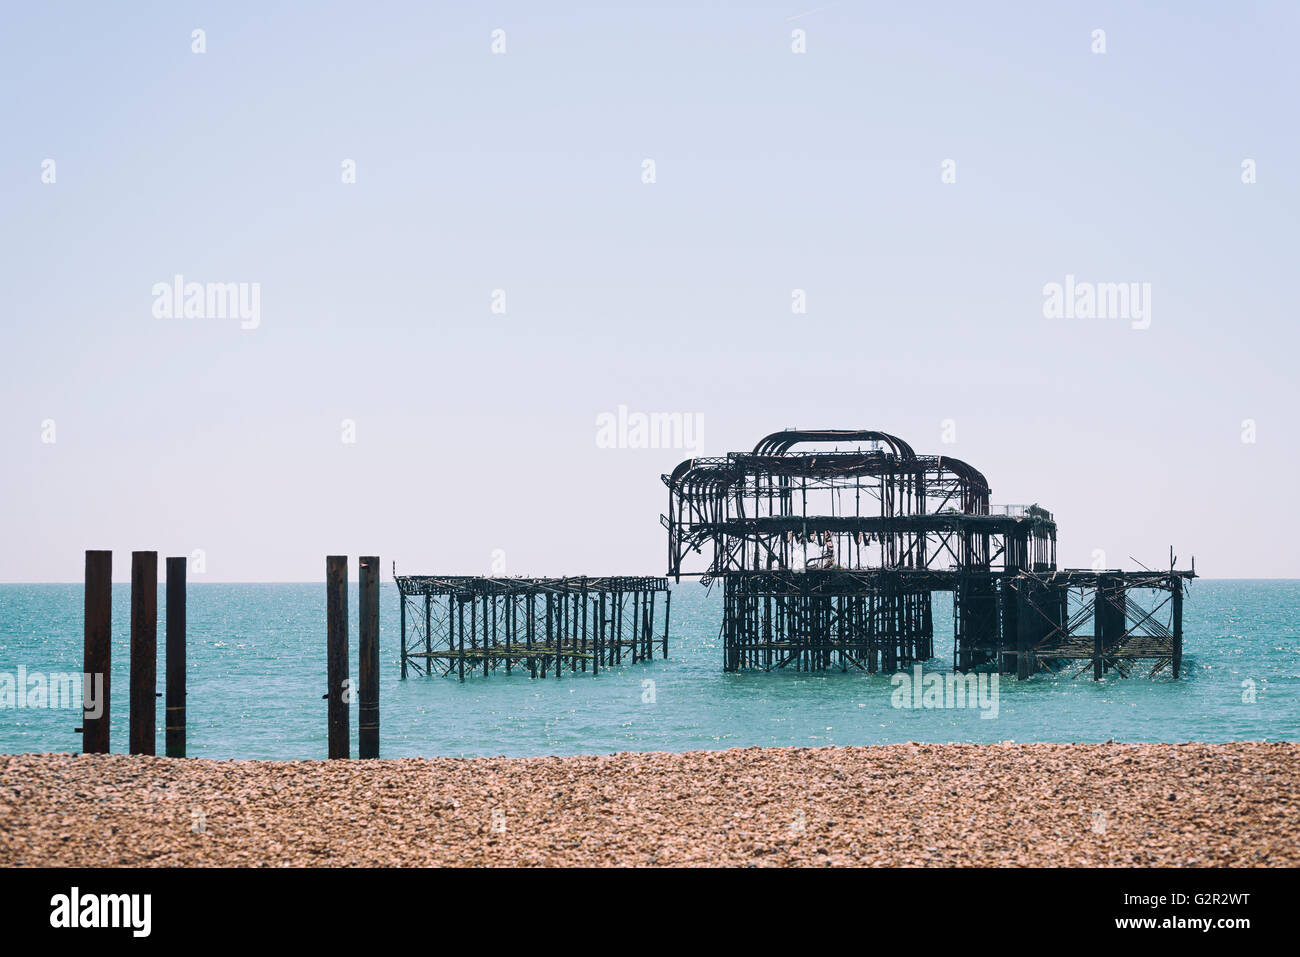 The Old Pier. - Stock Image